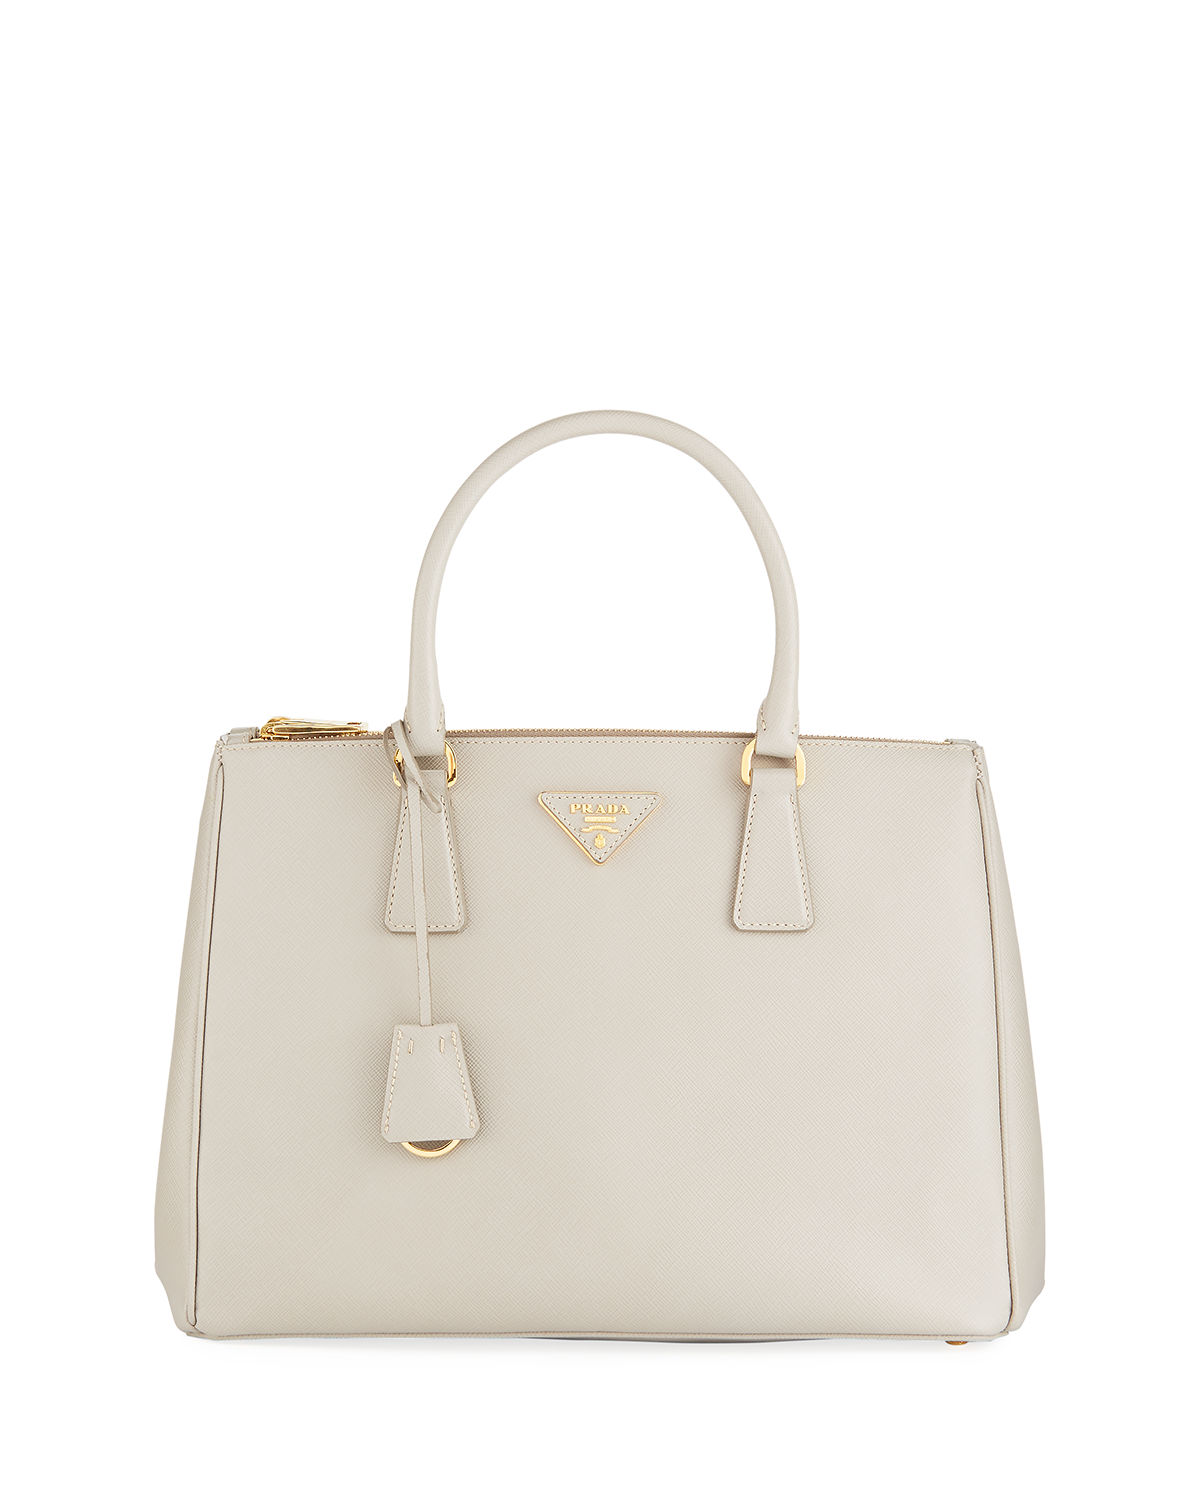 fd20ba24b7 Prada Galleria Medium Saffiano Tote Bag